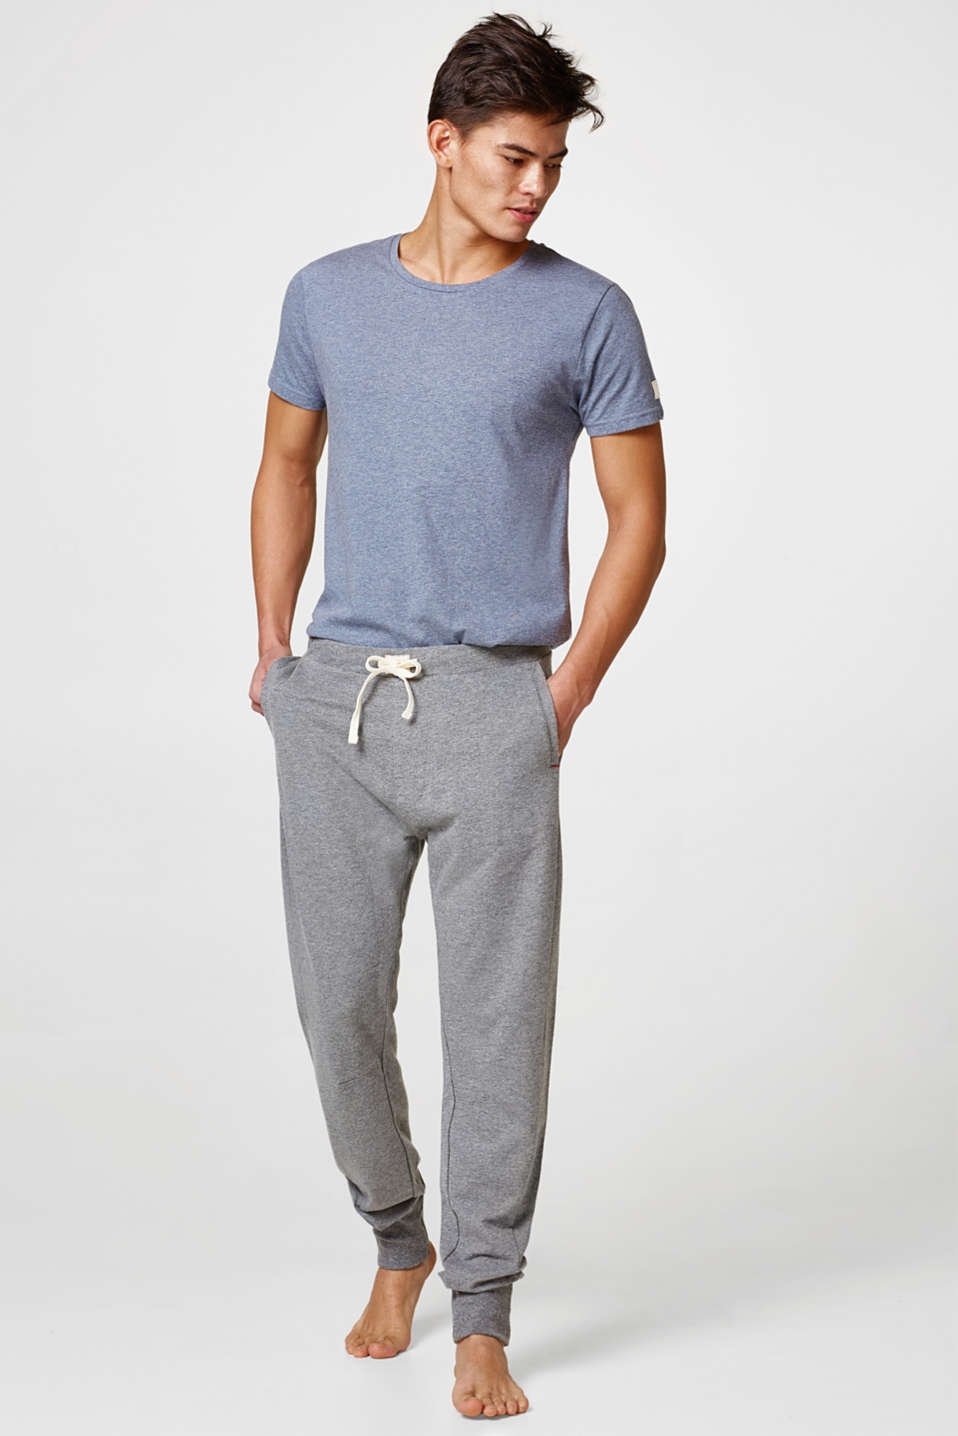 Esprit - Dense jersey trousers, cotton blend